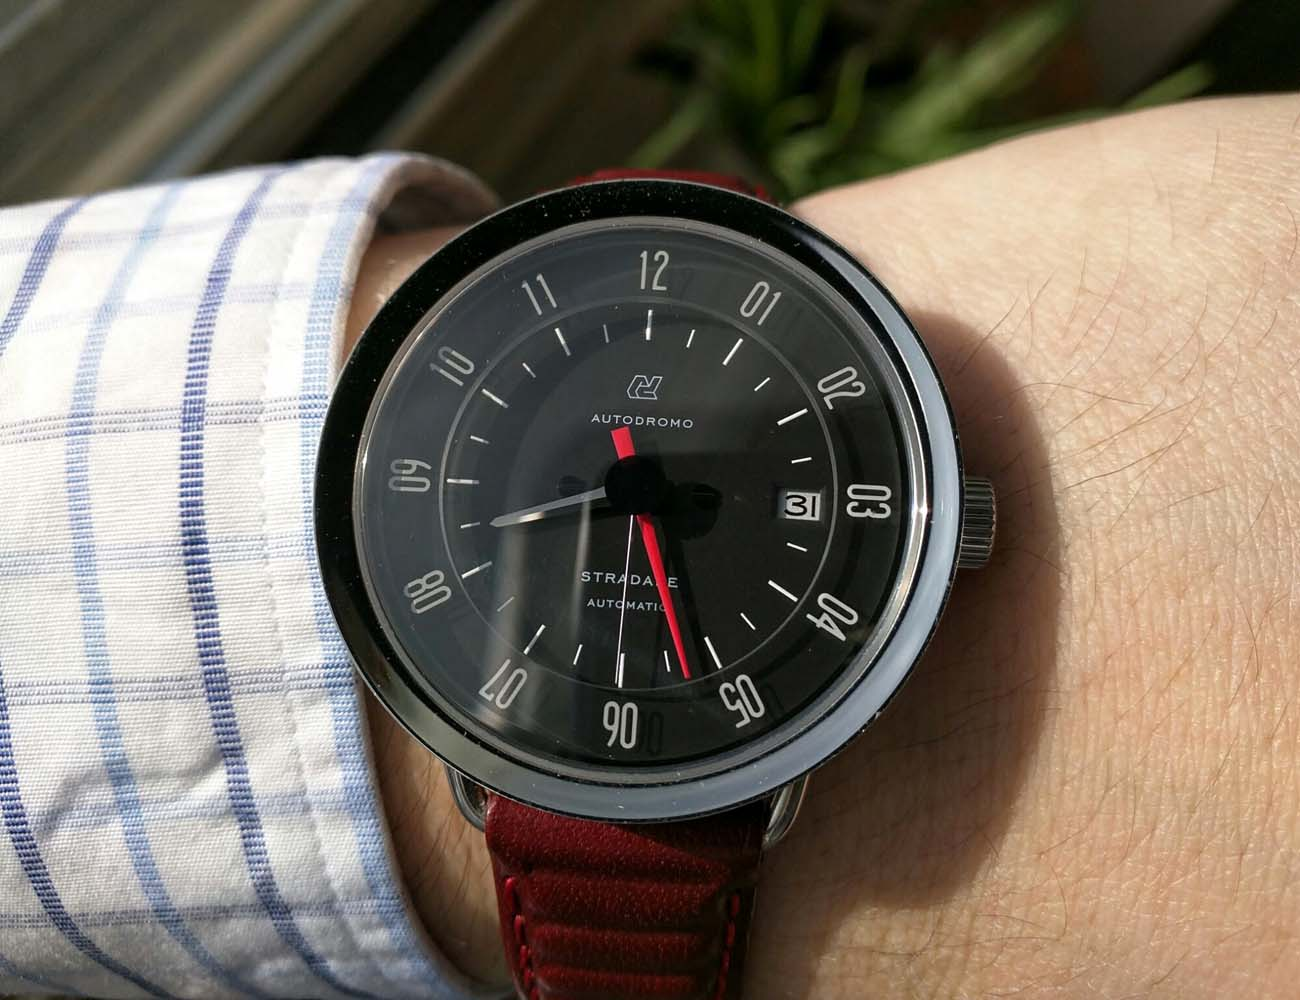 Autodromo+Stradale+Watch